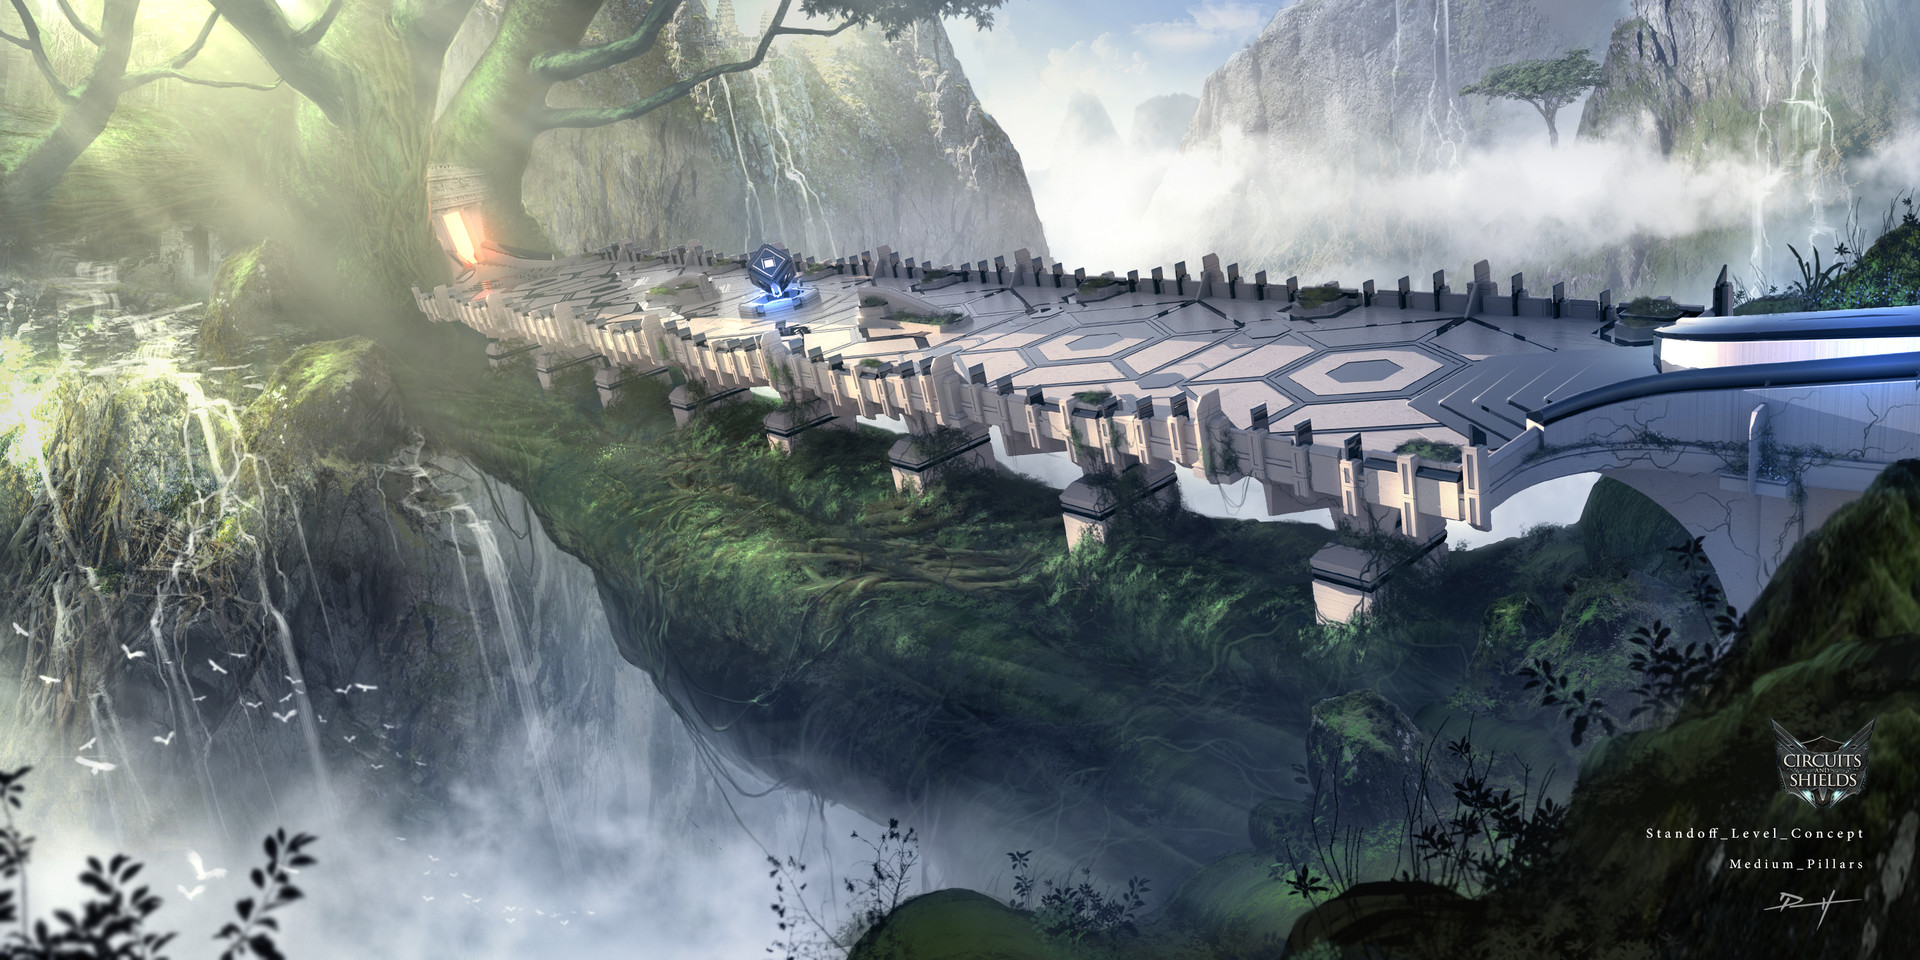 Daniel pellow grand tree gorge level concept 3 3 m pillars final 2